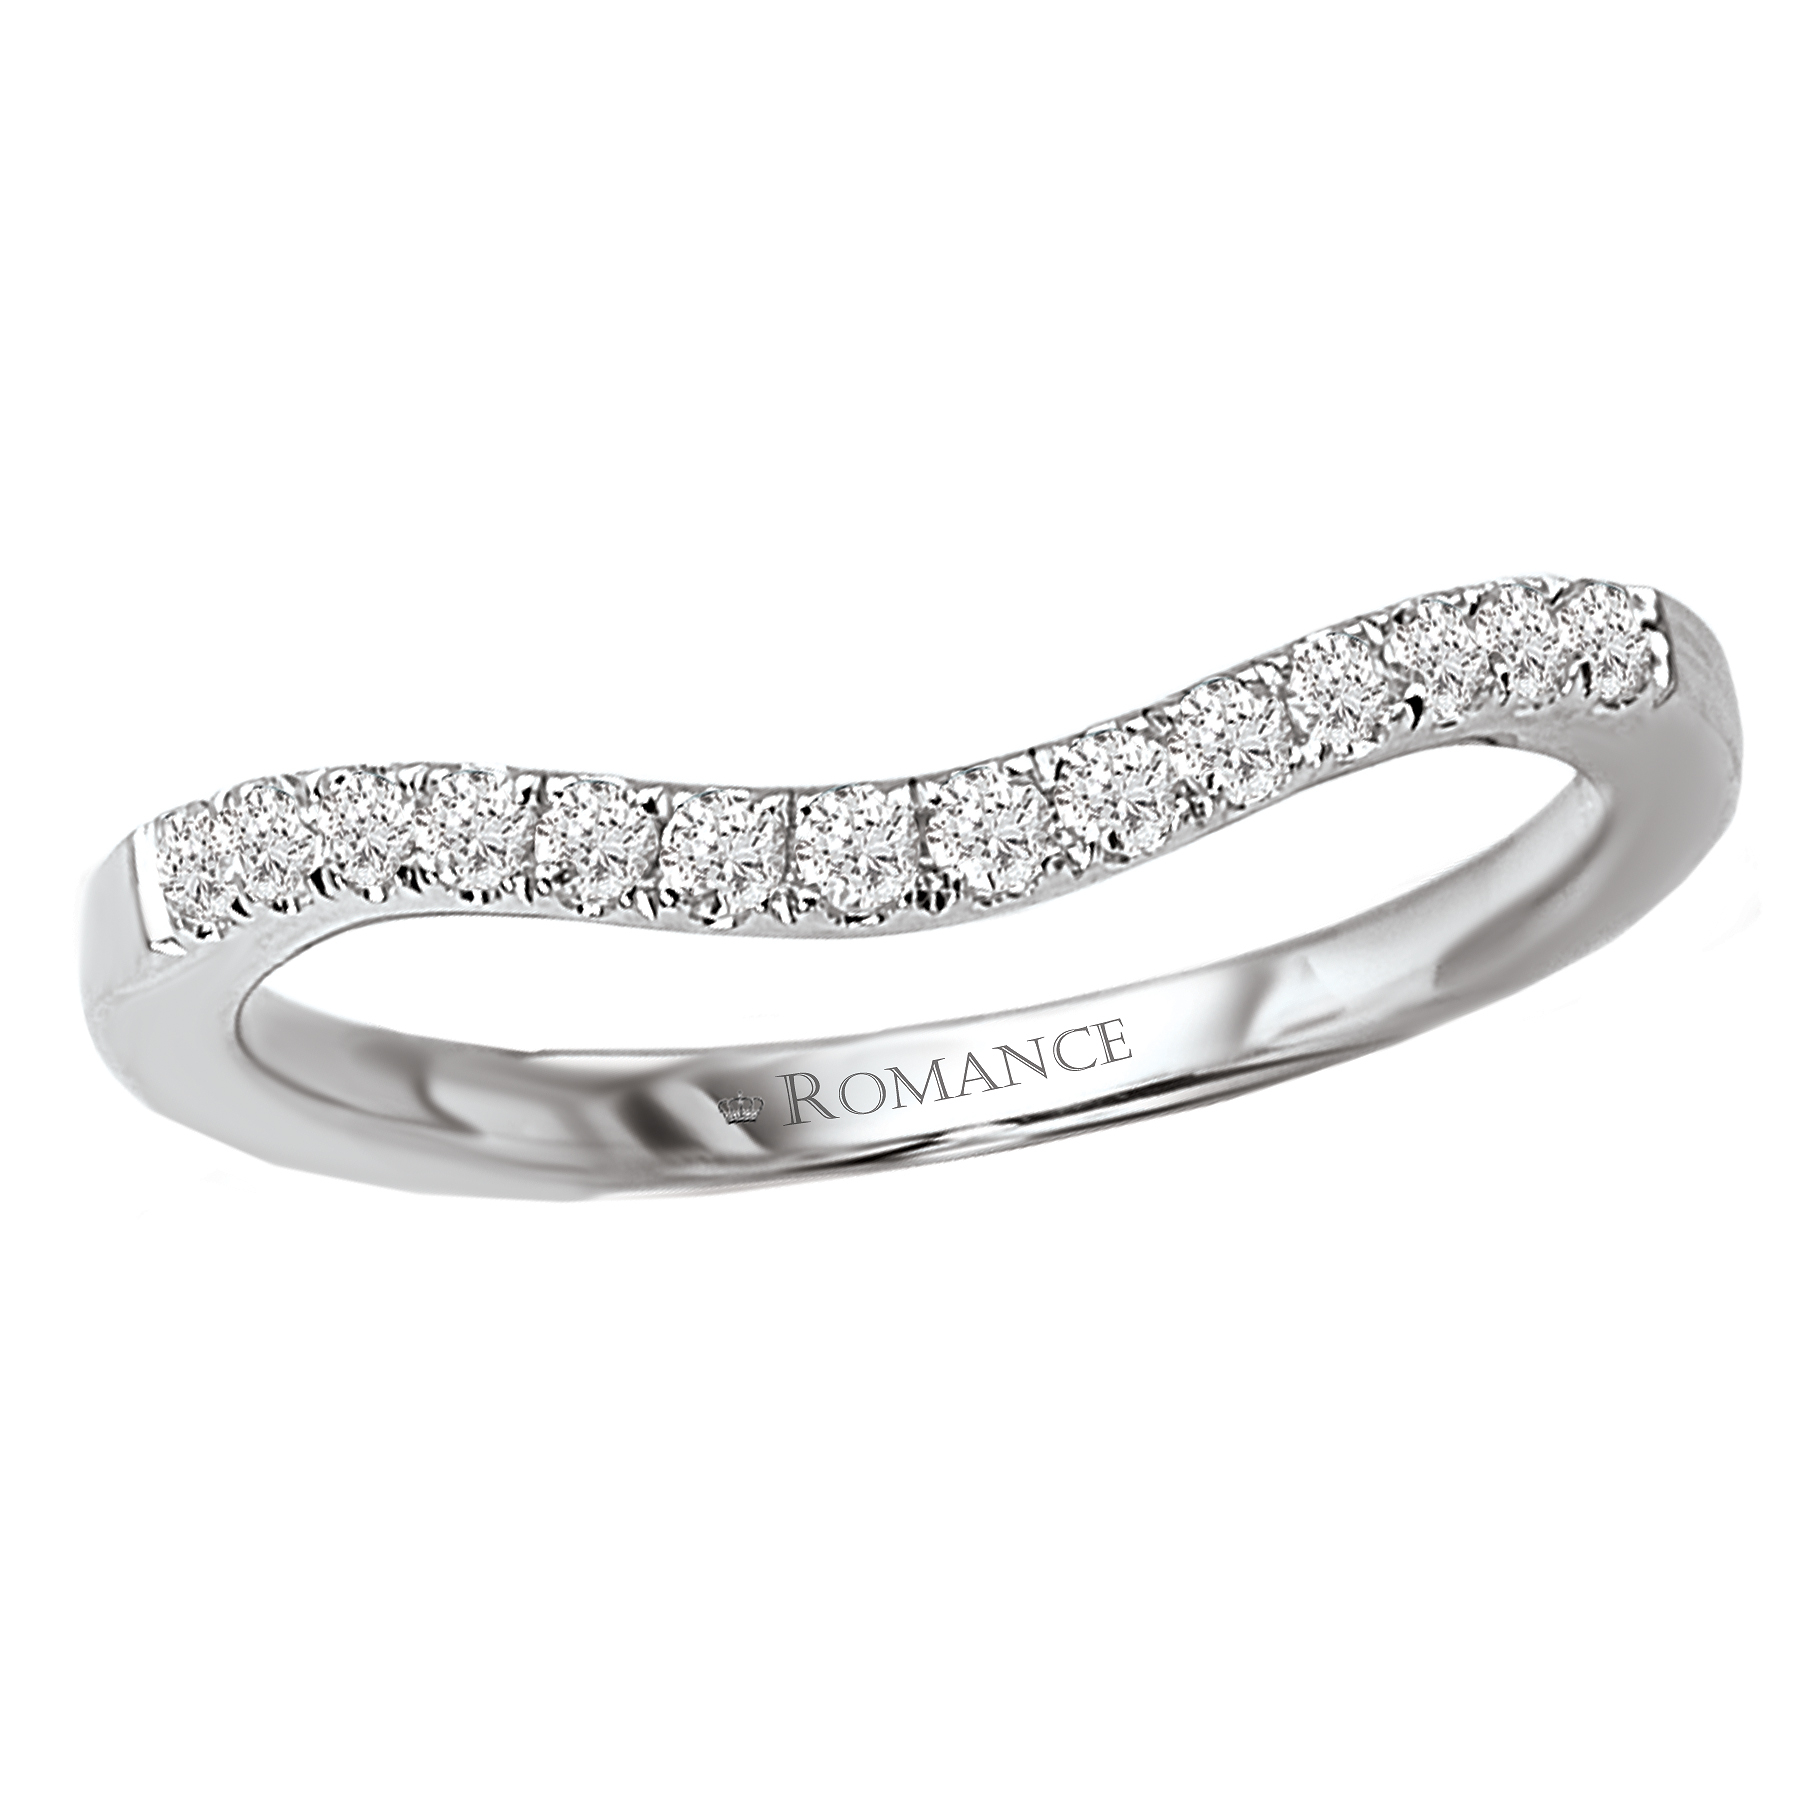 Romance Wedding Bands 117277-W product image